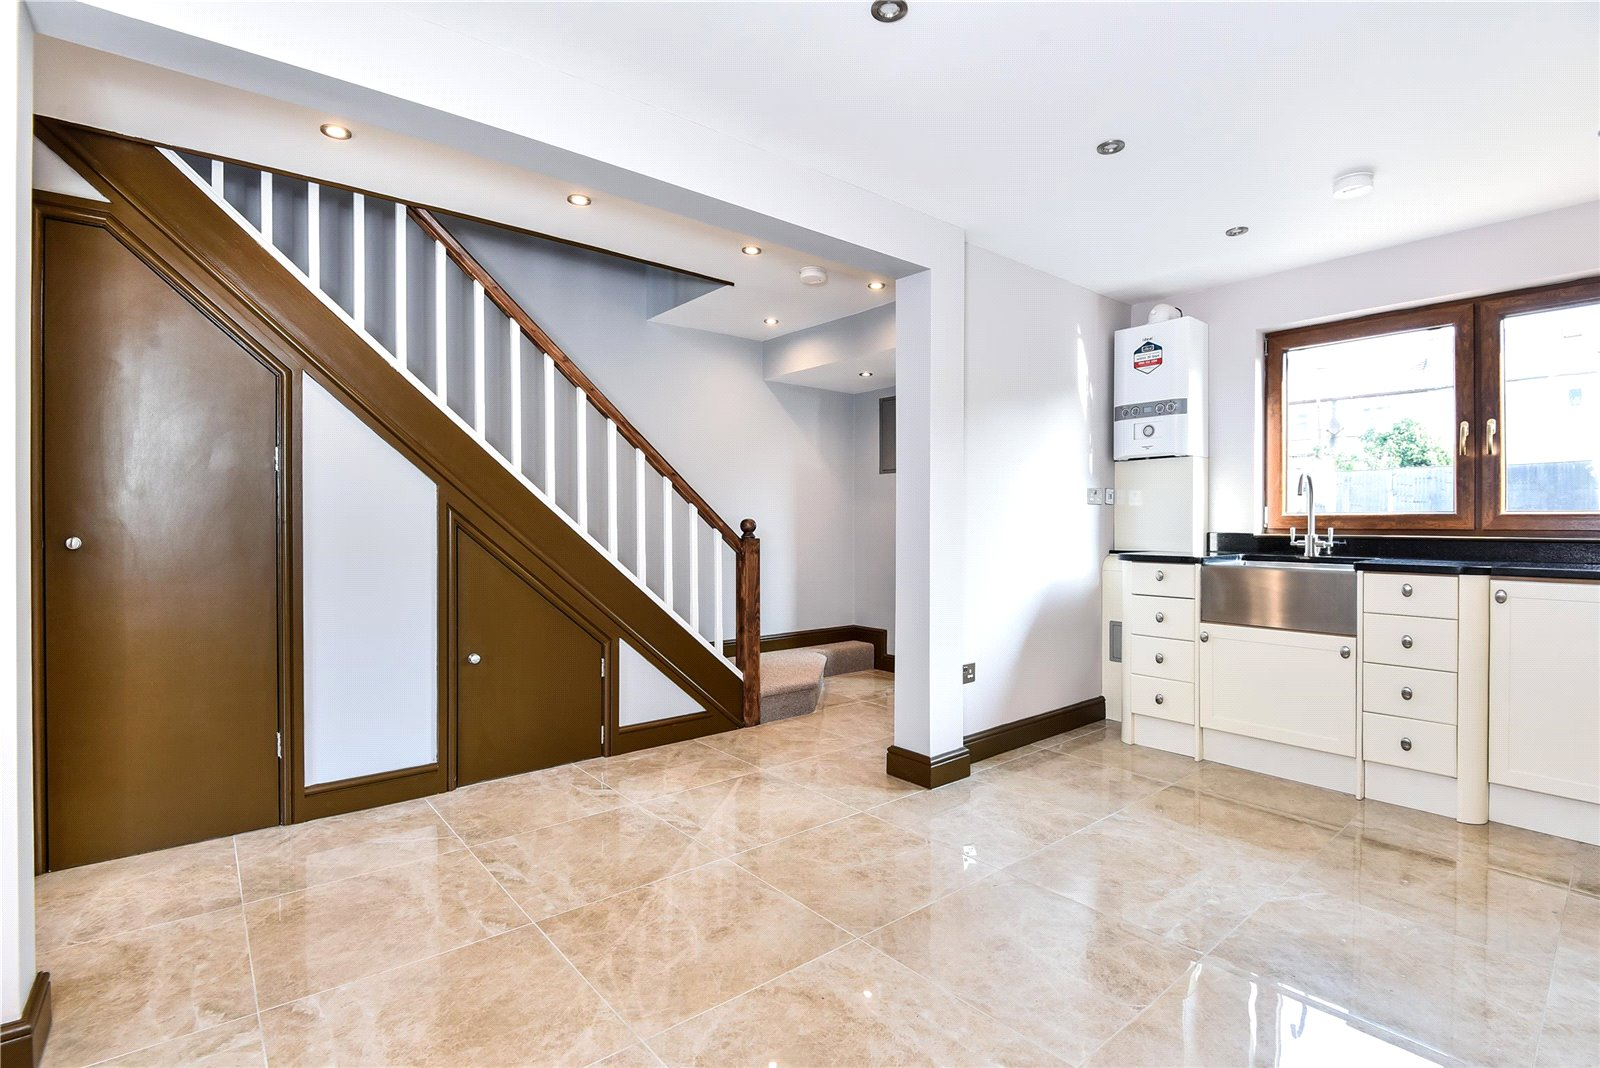 3 bed house for sale in Streatham 4